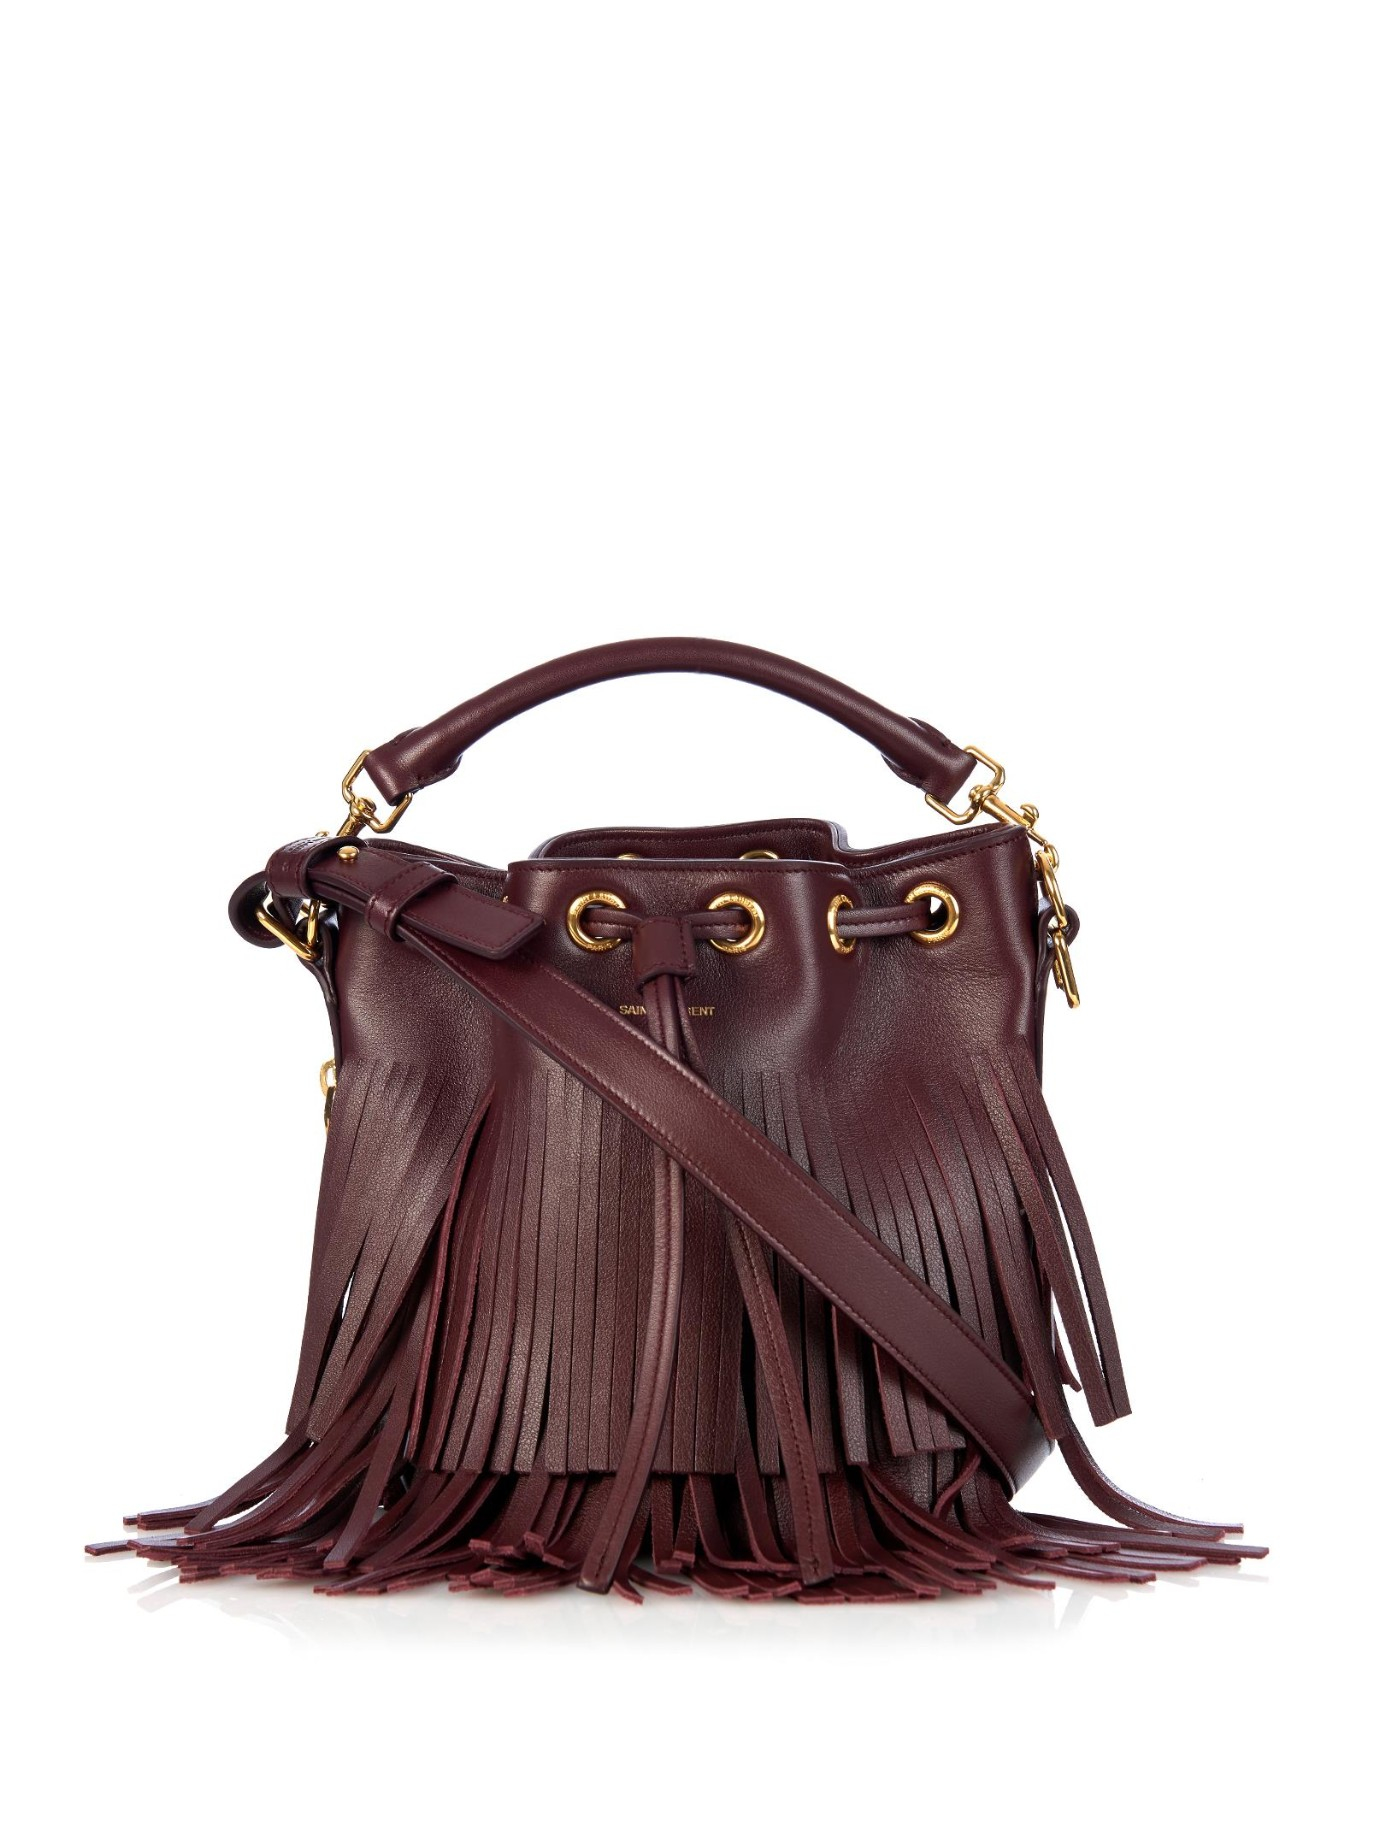 681b38fbdfa9 Lyst - Saint Laurent Emmanuelle Small Fringed Leather Bucket Bag in ...